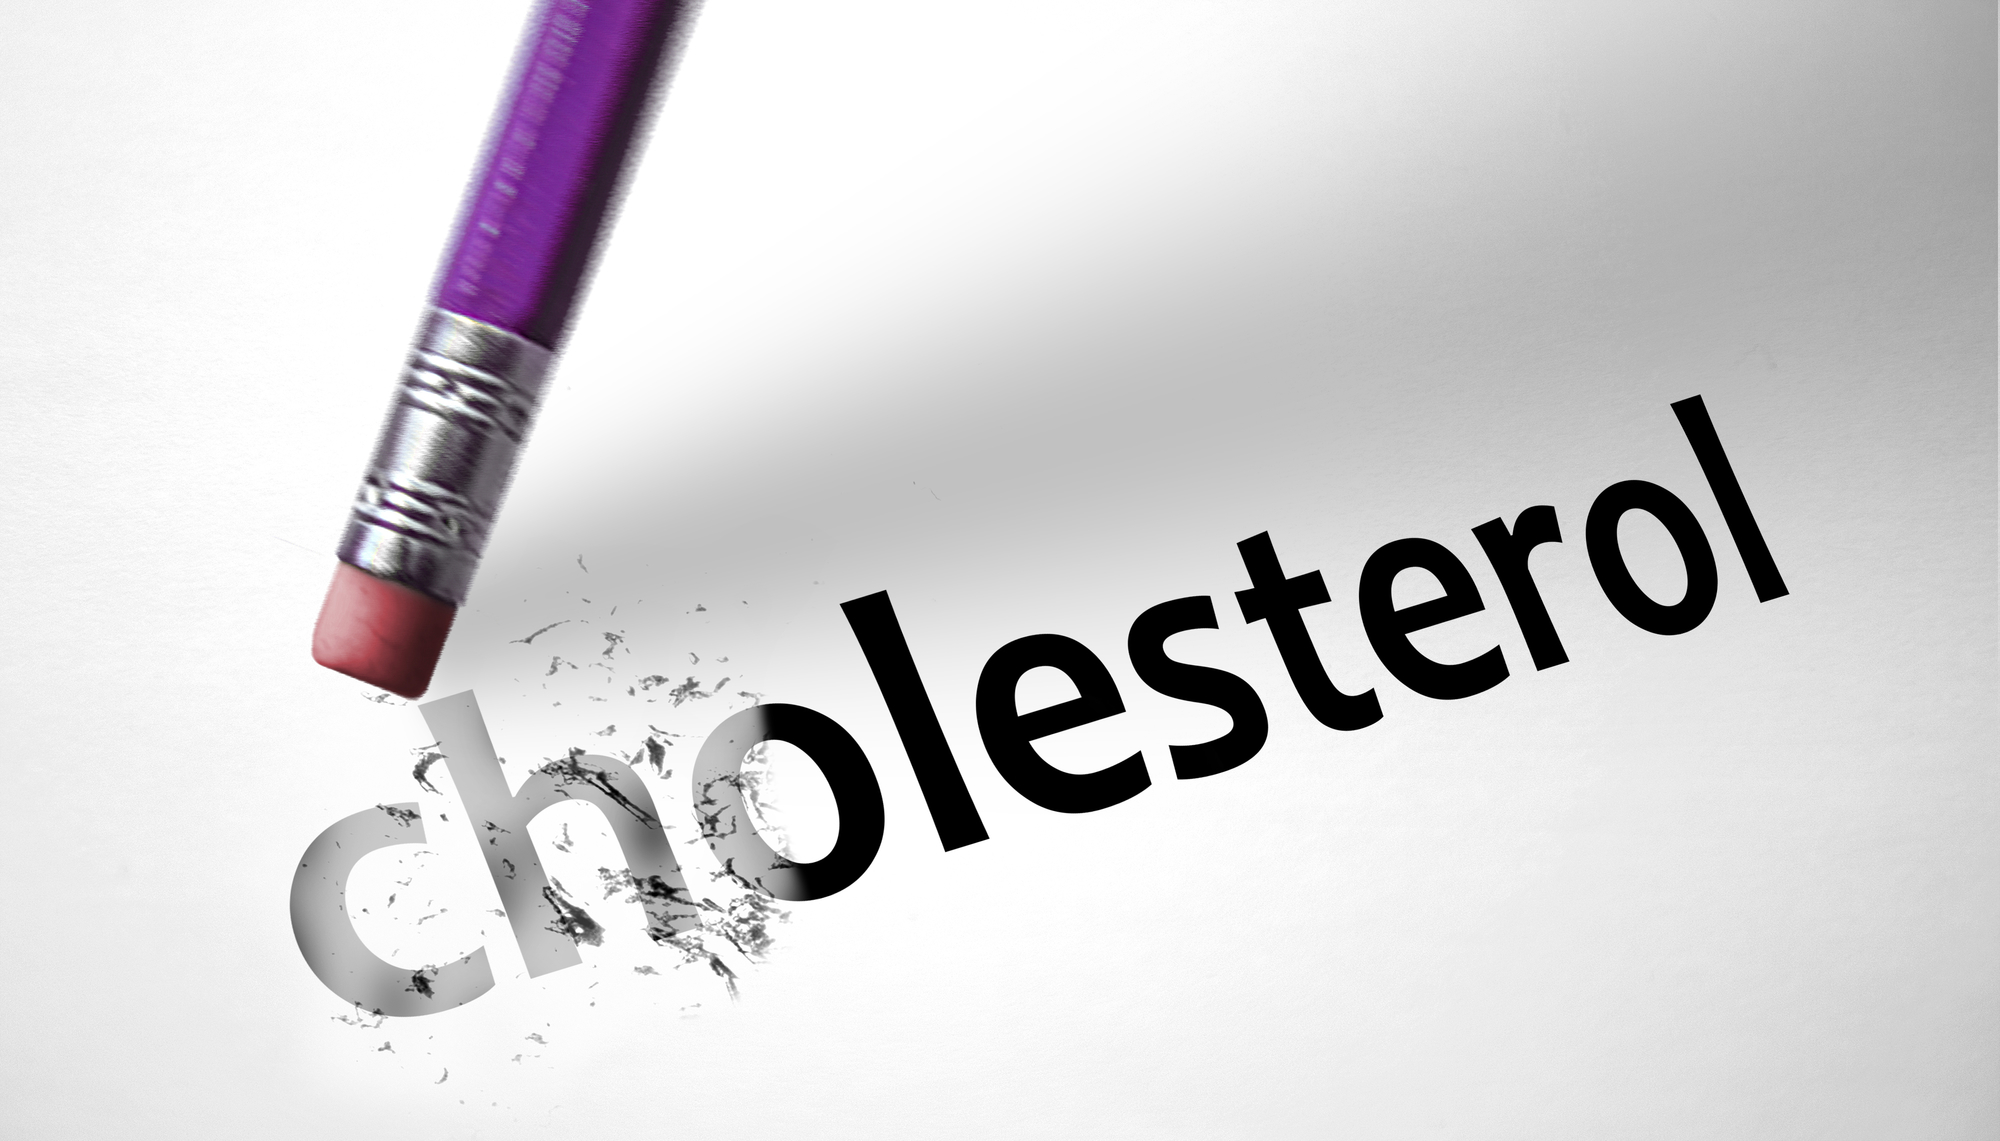 Eraser deleting the word Cholesterol